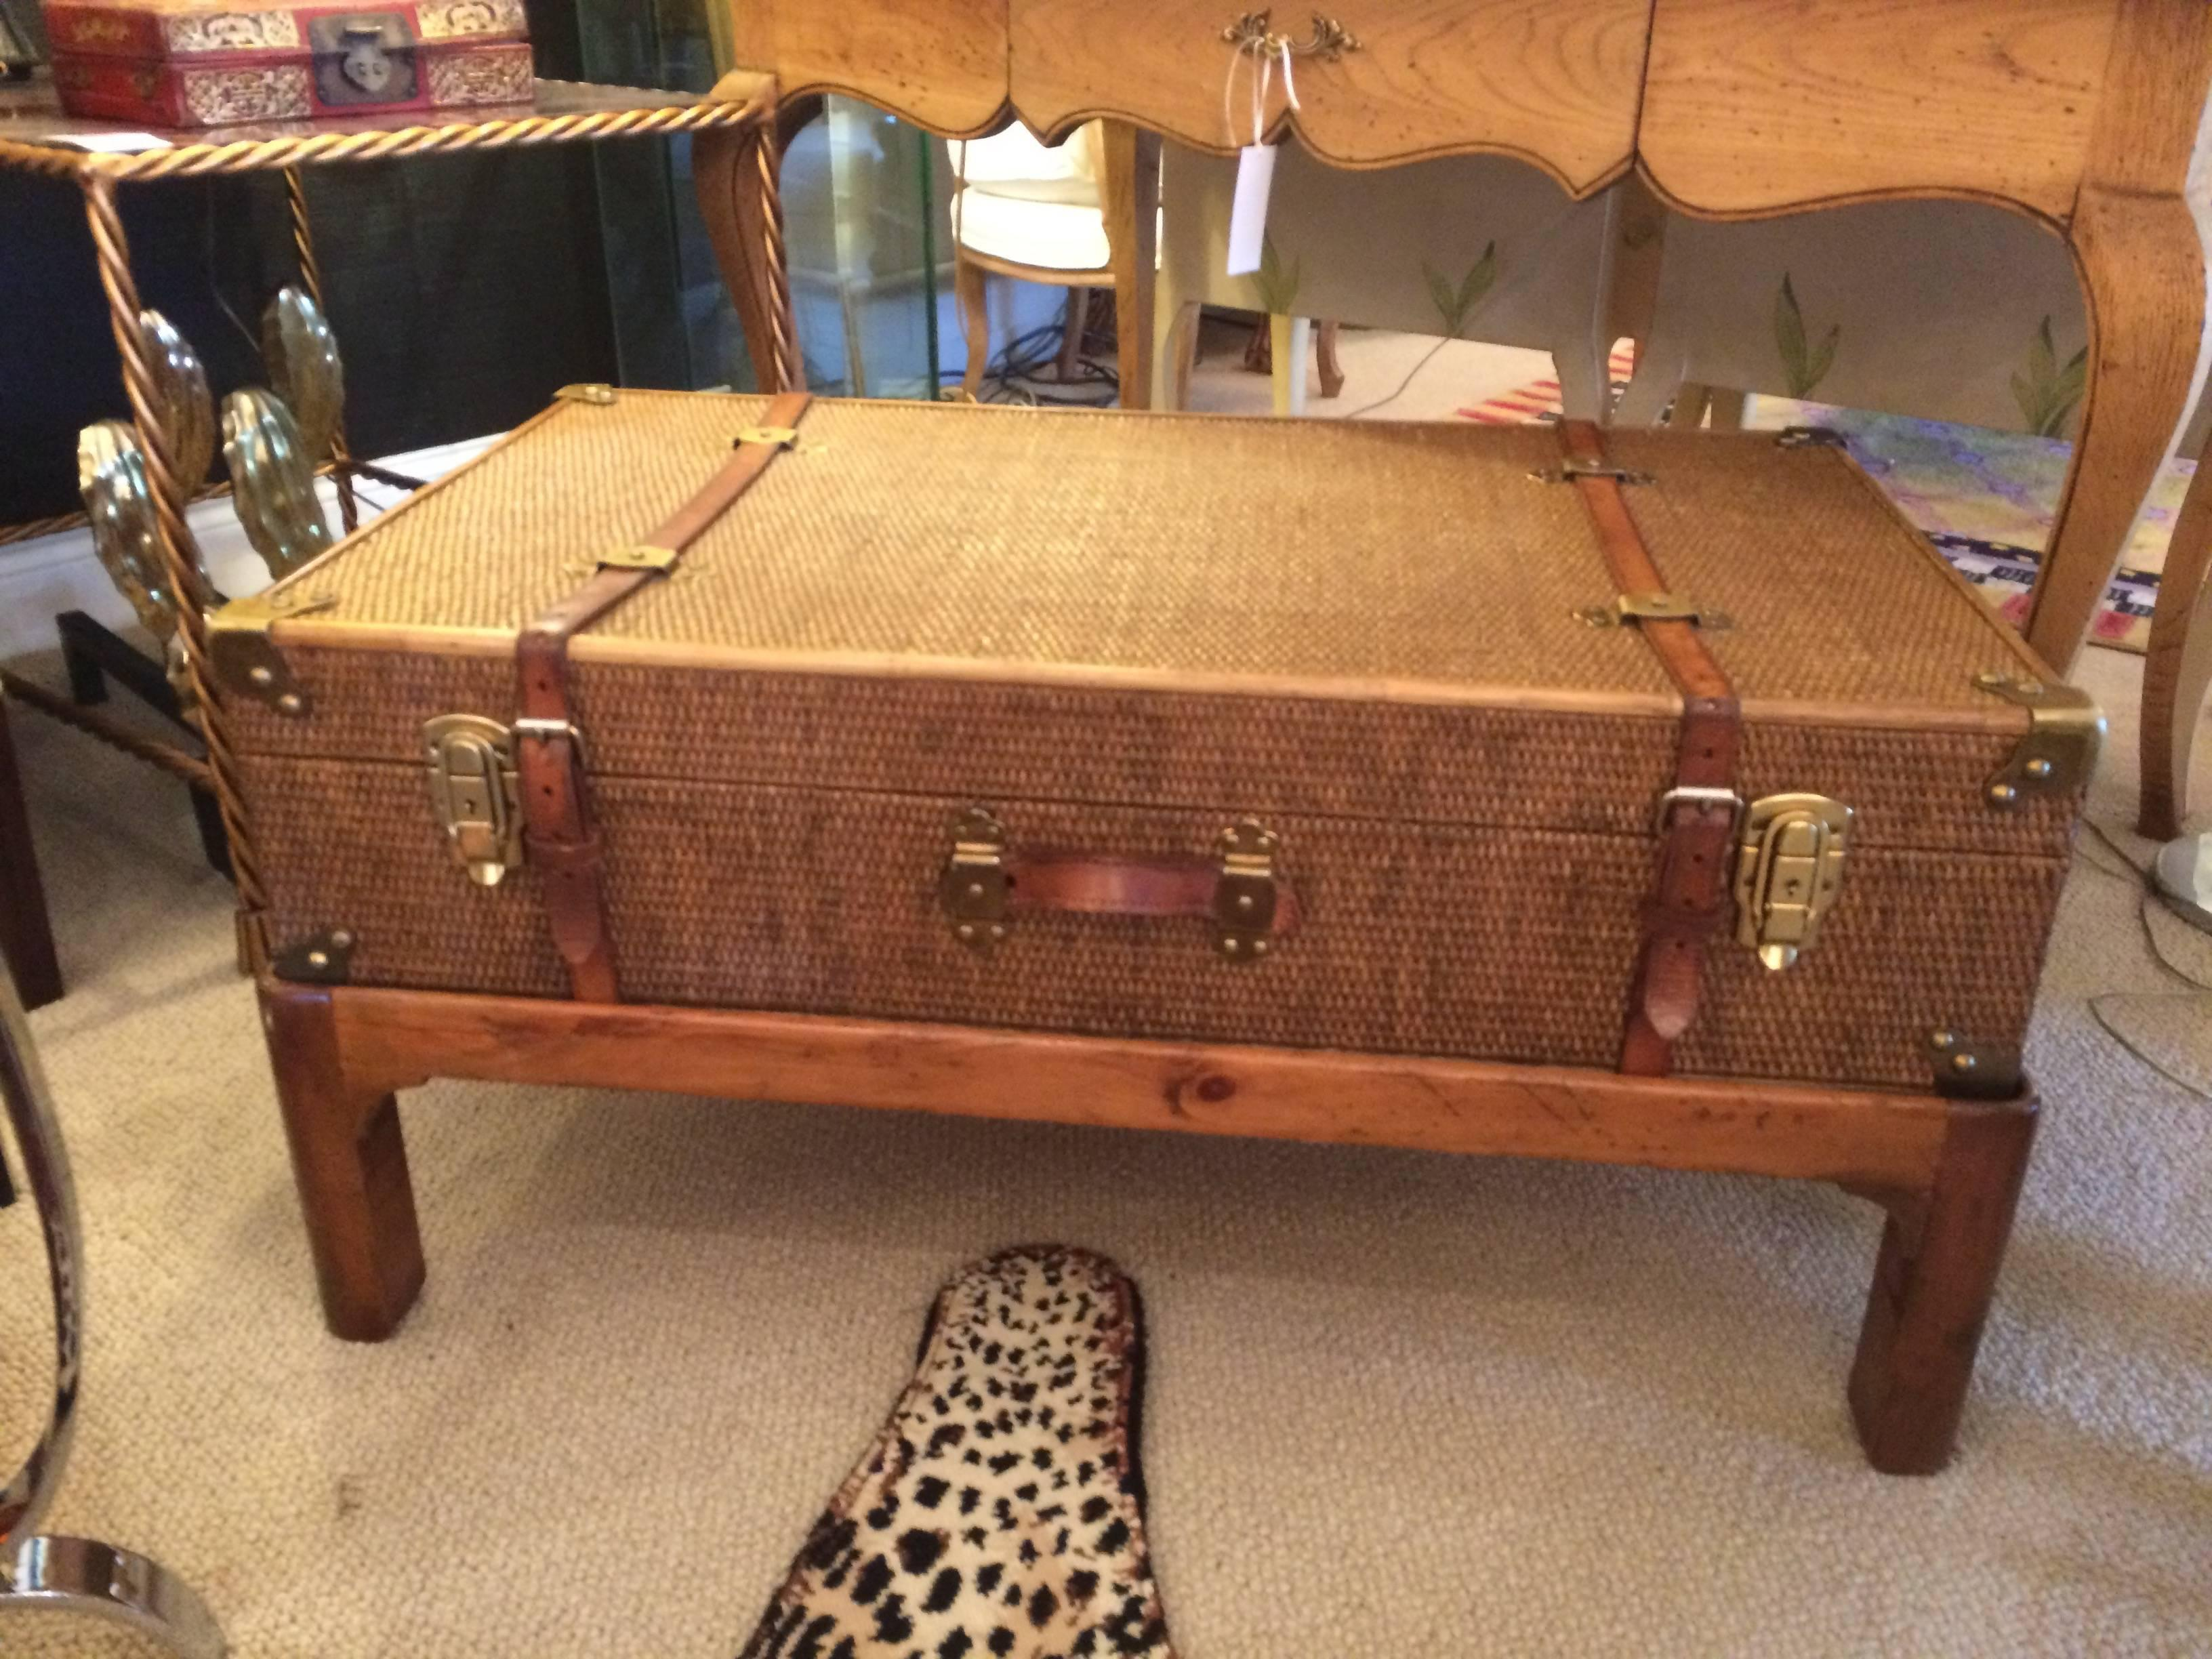 Incroyable One Of A Kind Vintage Rattan Suitcase Coffee Table On Custom Wooden Base